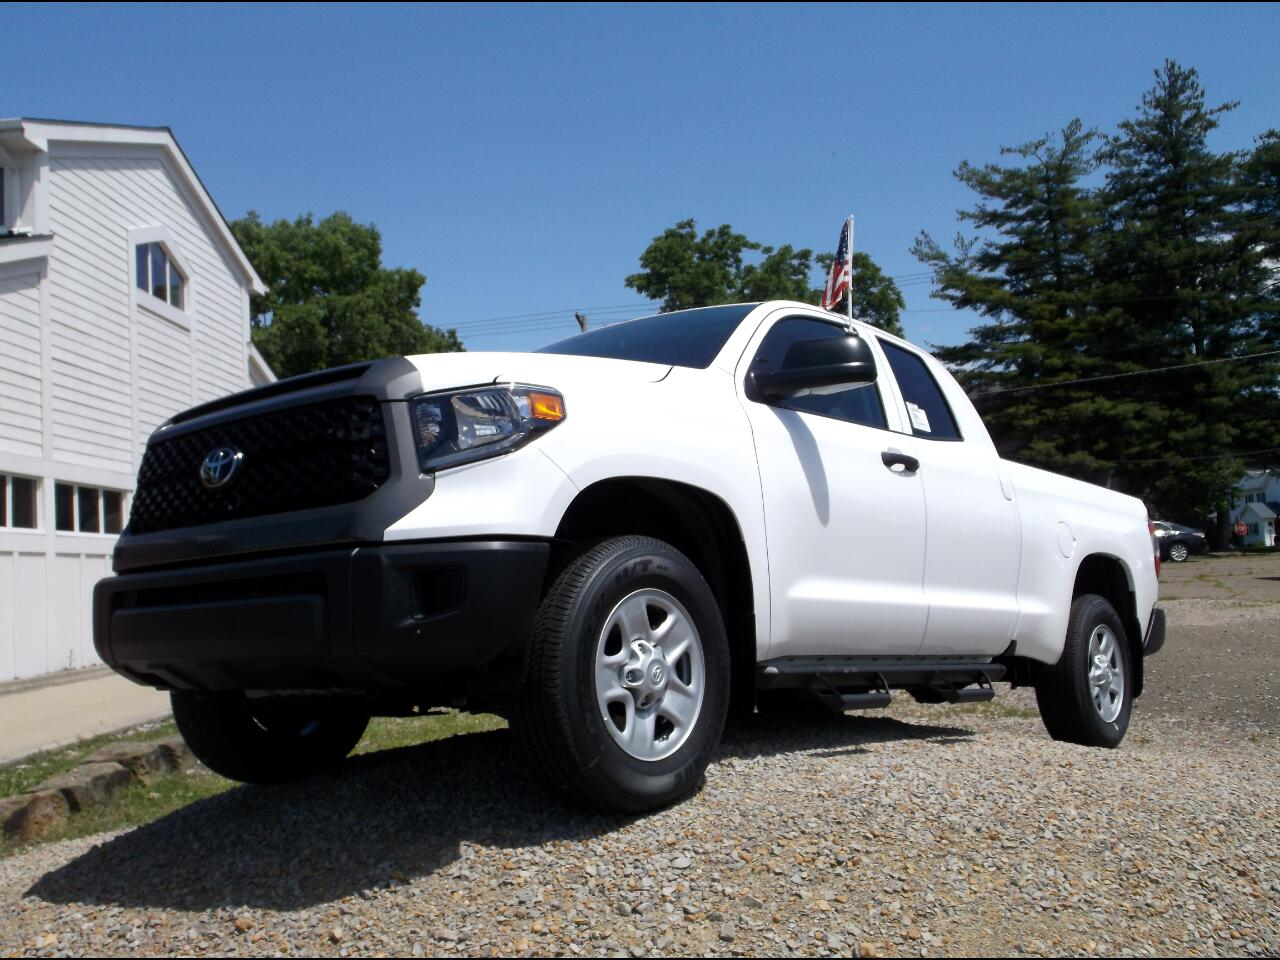 2021 Toyota Tundra 4WD SR Double Cab 6.5' Bed 5.7L (Natl)